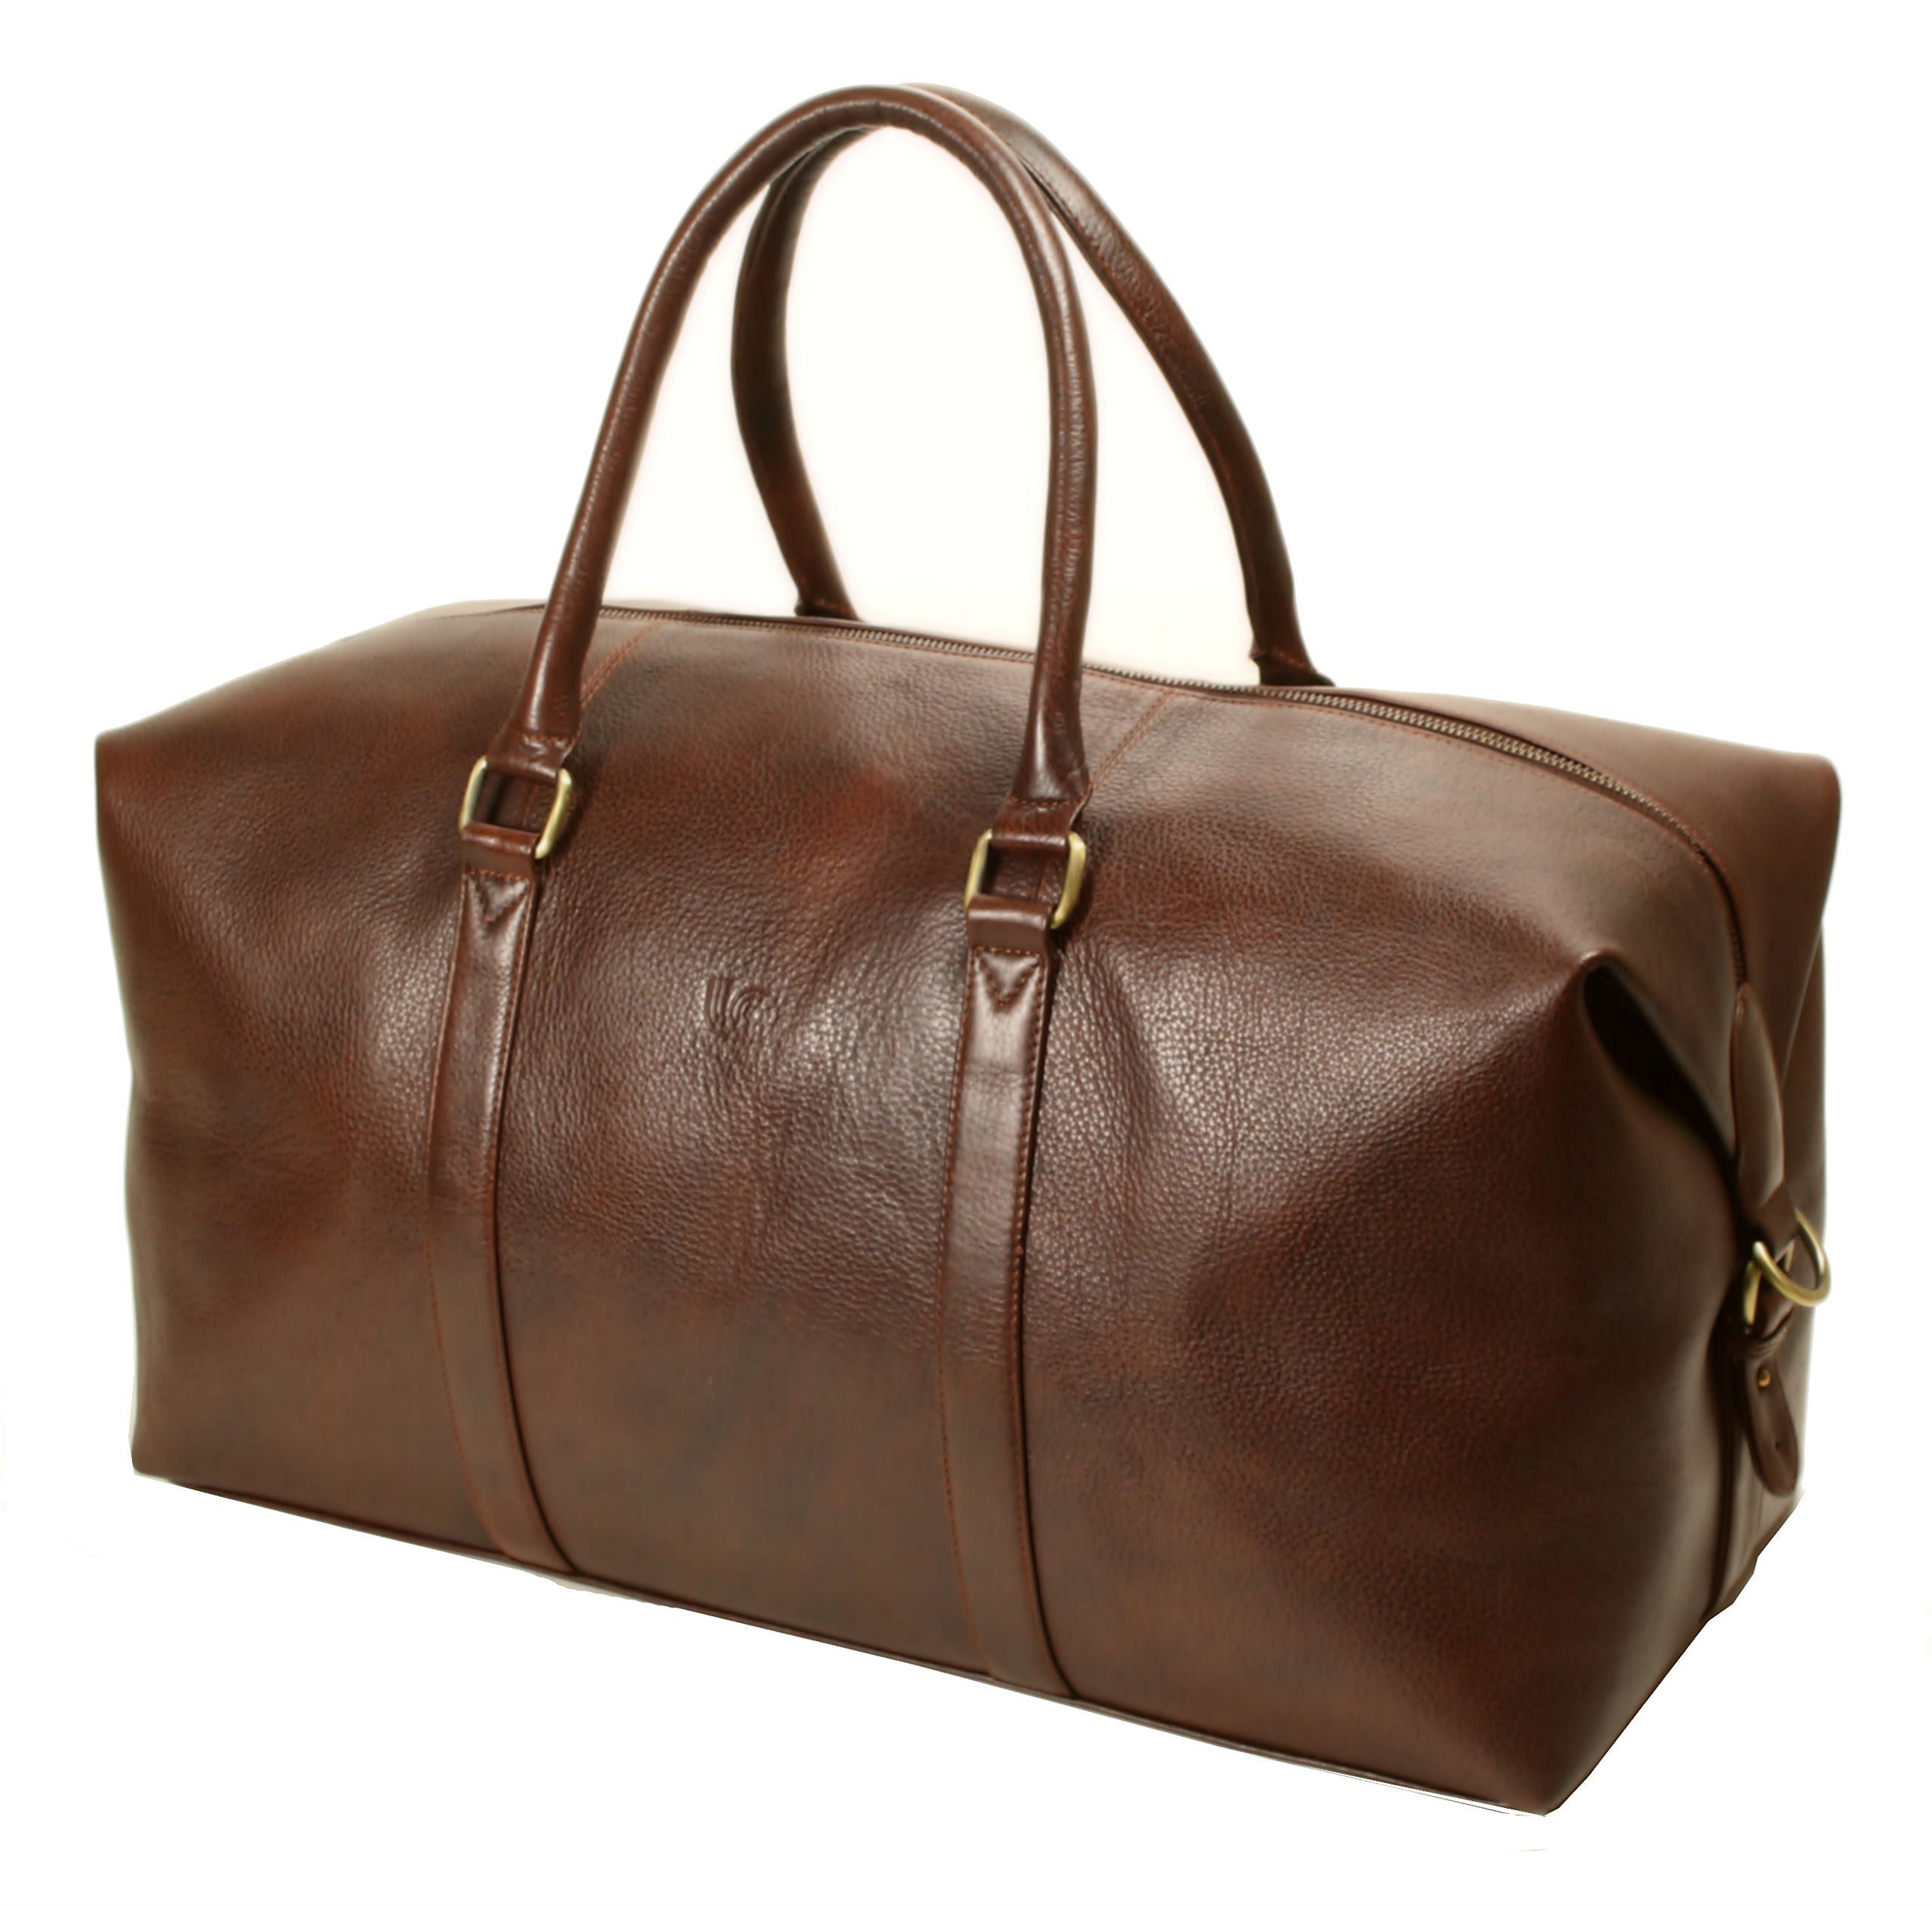 LeftOver Studio Expandable Weekend Overnight Travel Duffel Bag in Brown Top Grain Cow Leather